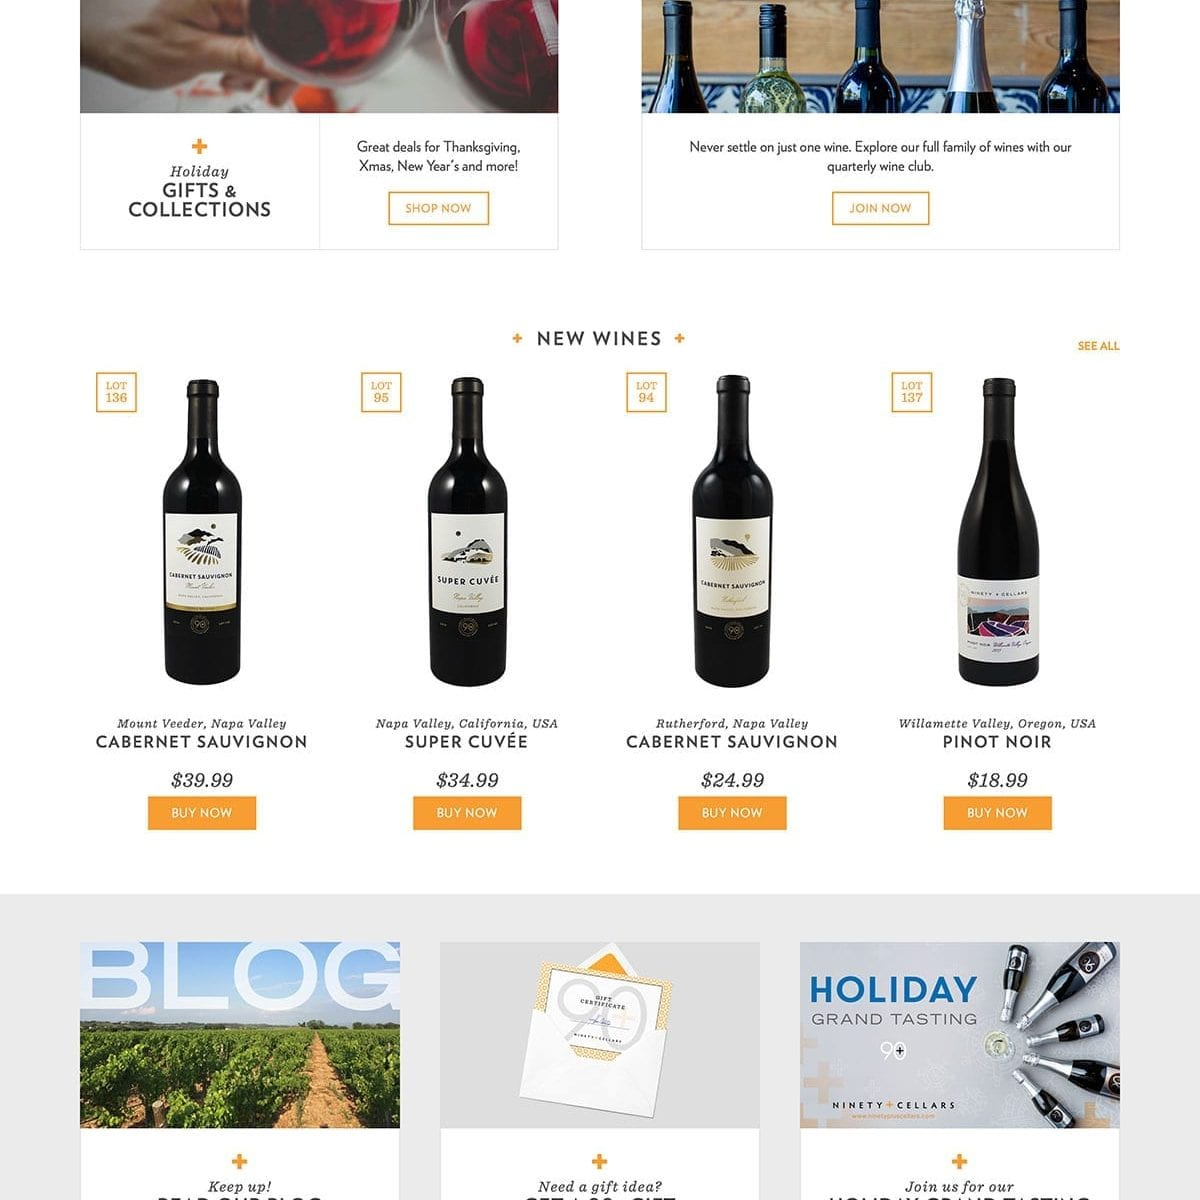 90+-Cellars-_-The-World's-Best-Wines-for-Less-(20161118)